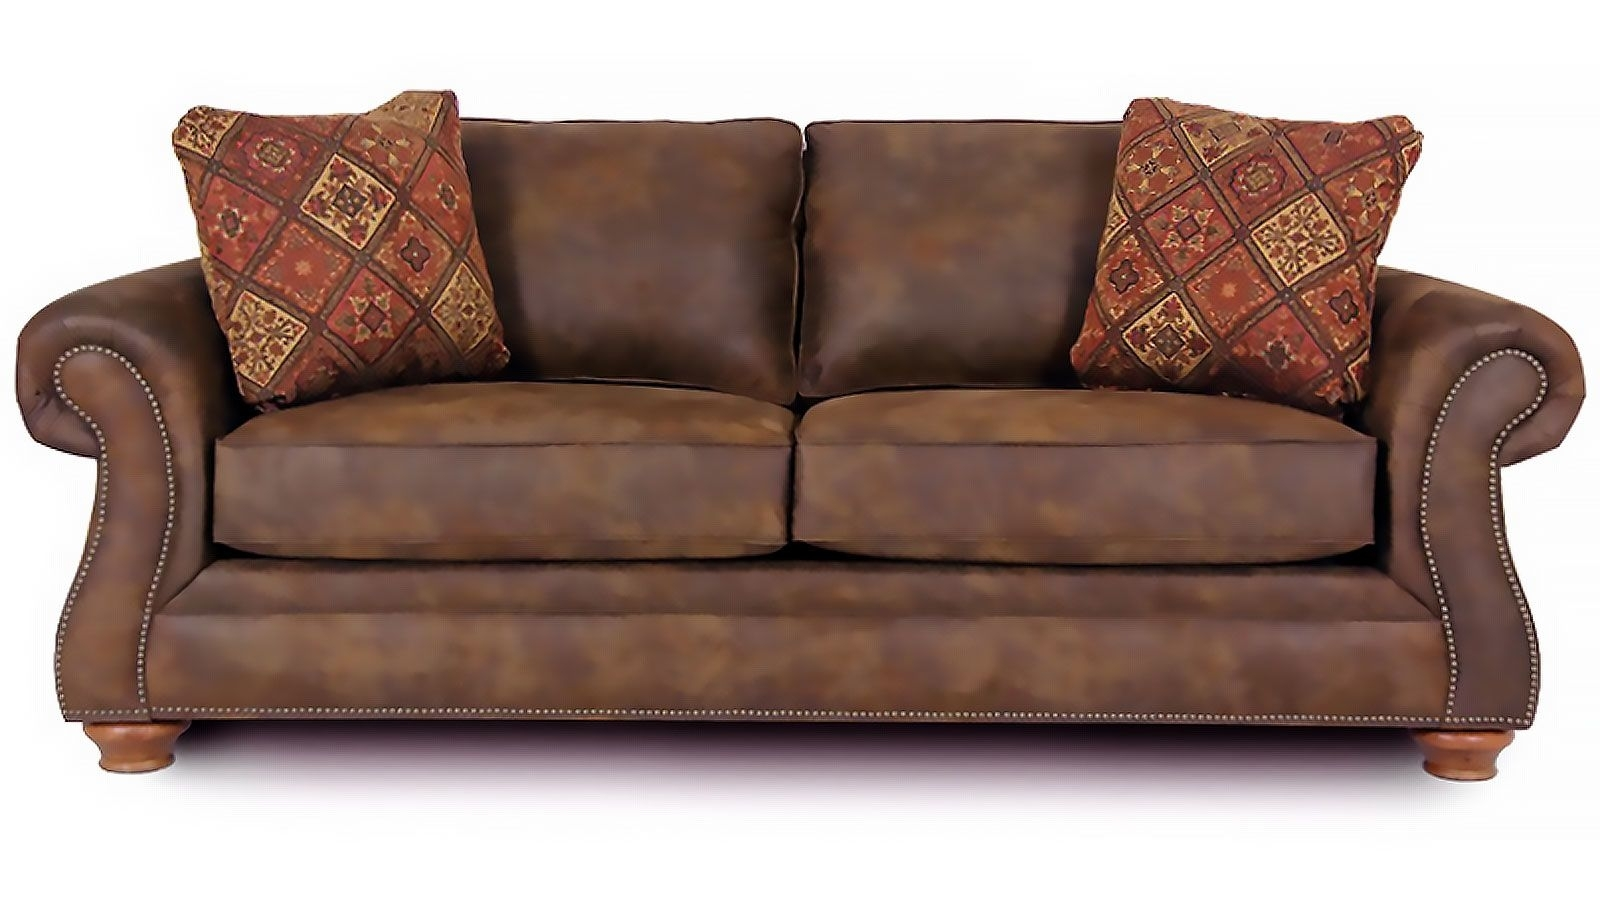 Living Room Furniture regarding Aspen 2 Piece Sleeper Sectionals With Raf Chaise (Image 14 of 30)